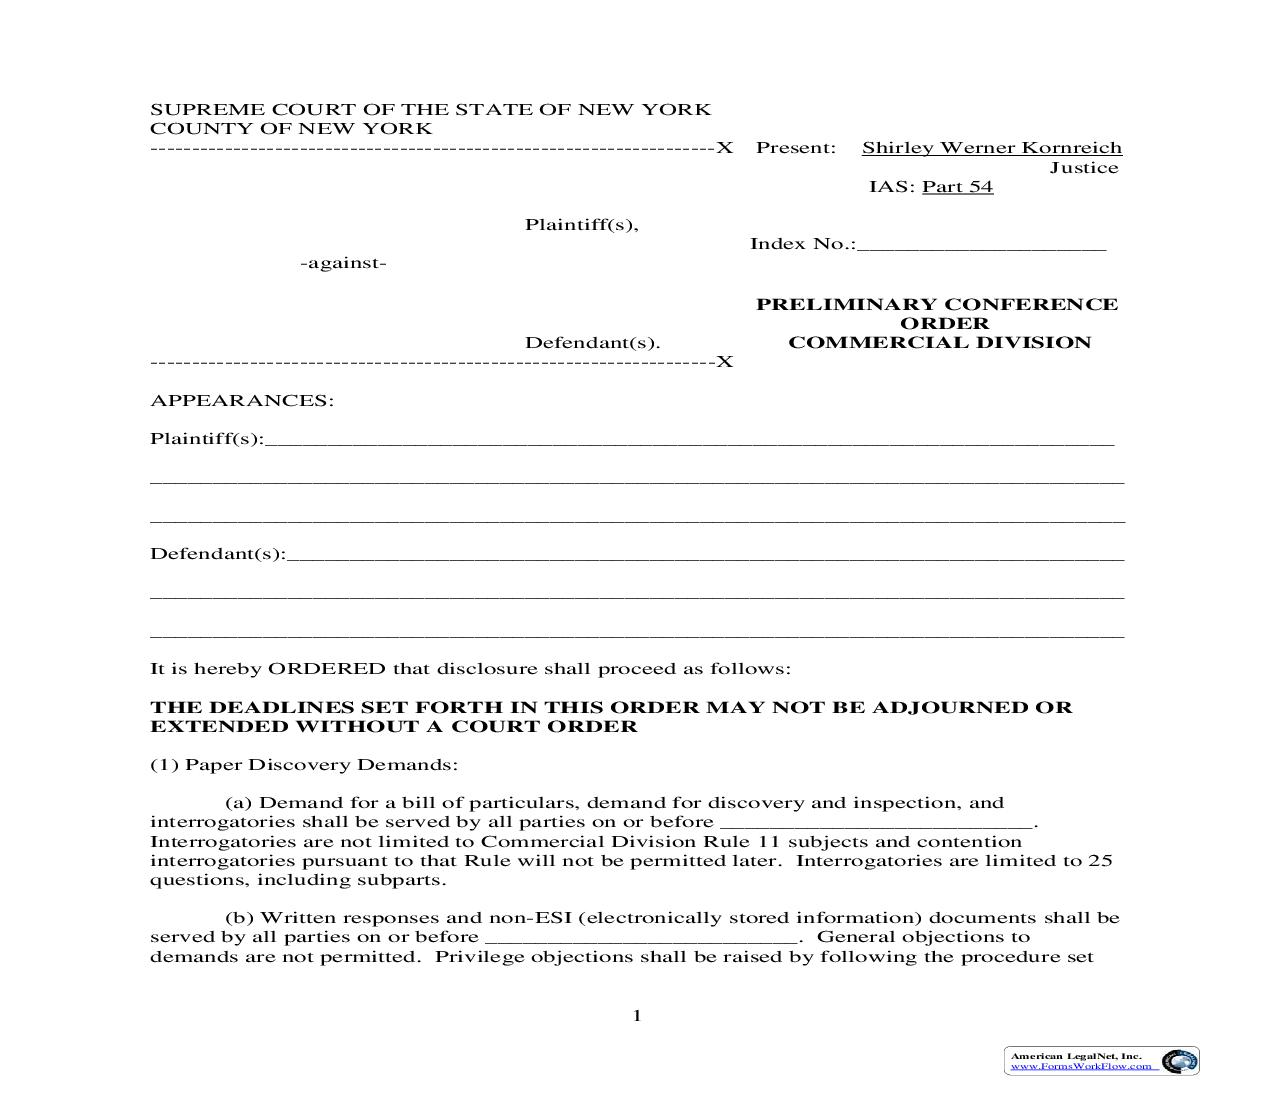 Preliminary Conference Order (Part 54) | Pdf Fpdf Doc Docx | New York